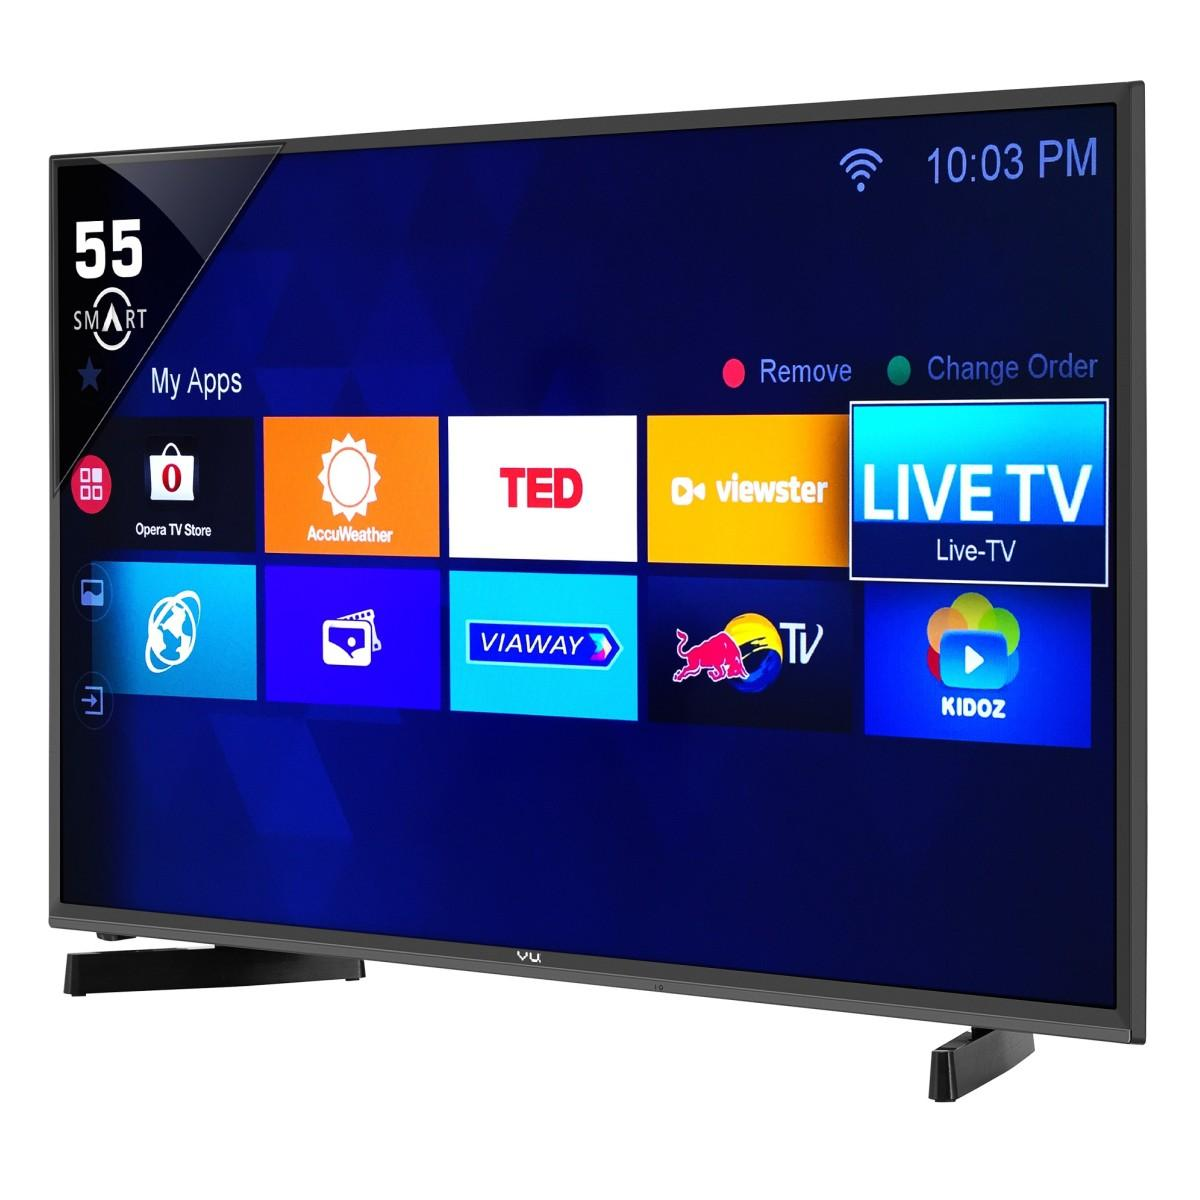 Vu 55UH8475 (55) Full HD Smart LED TV